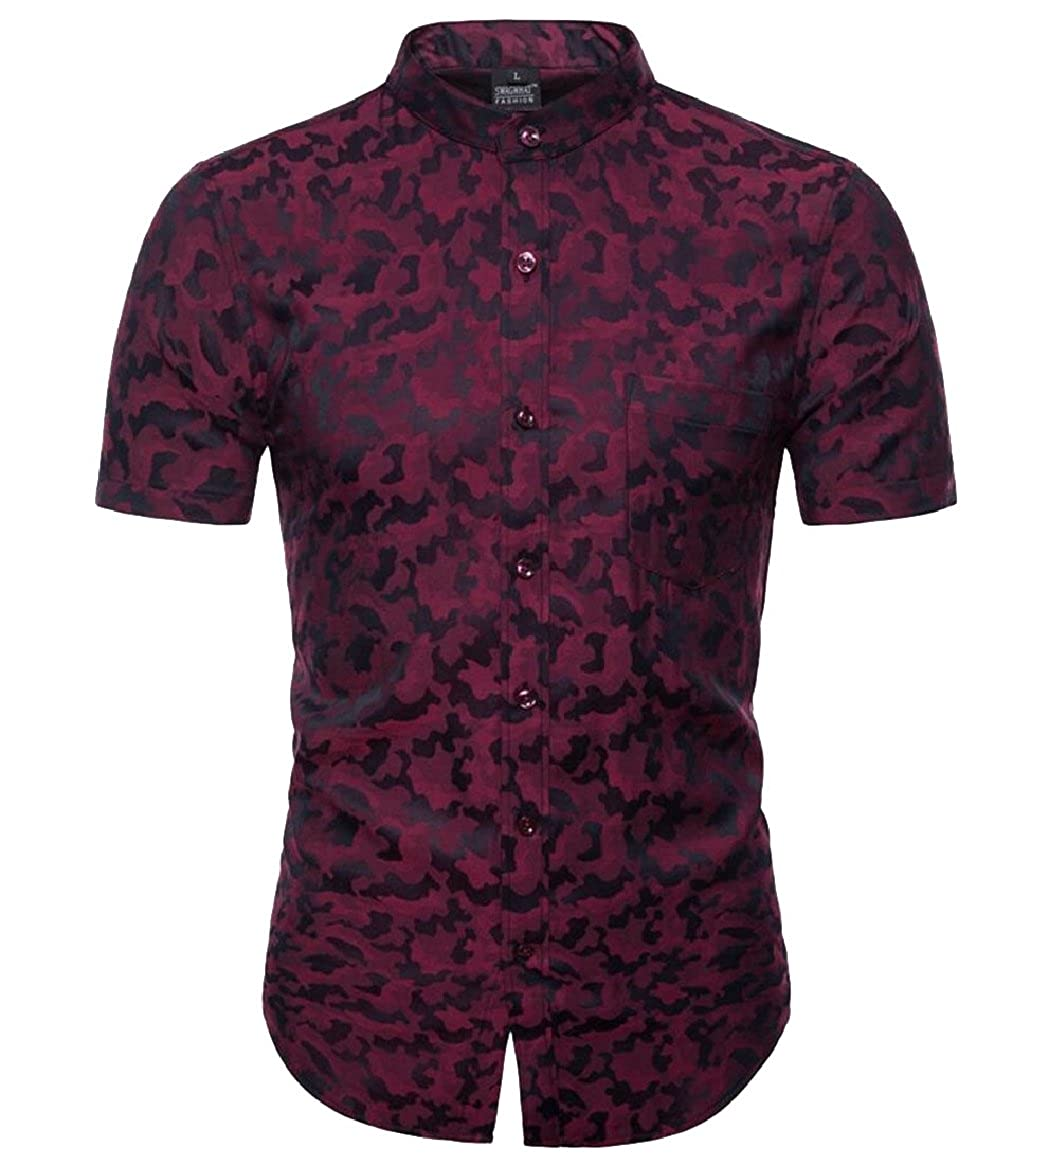 shinianlaile Mens Camouflage Shirt Casual Printed Button Down Short Sleeve Shirts